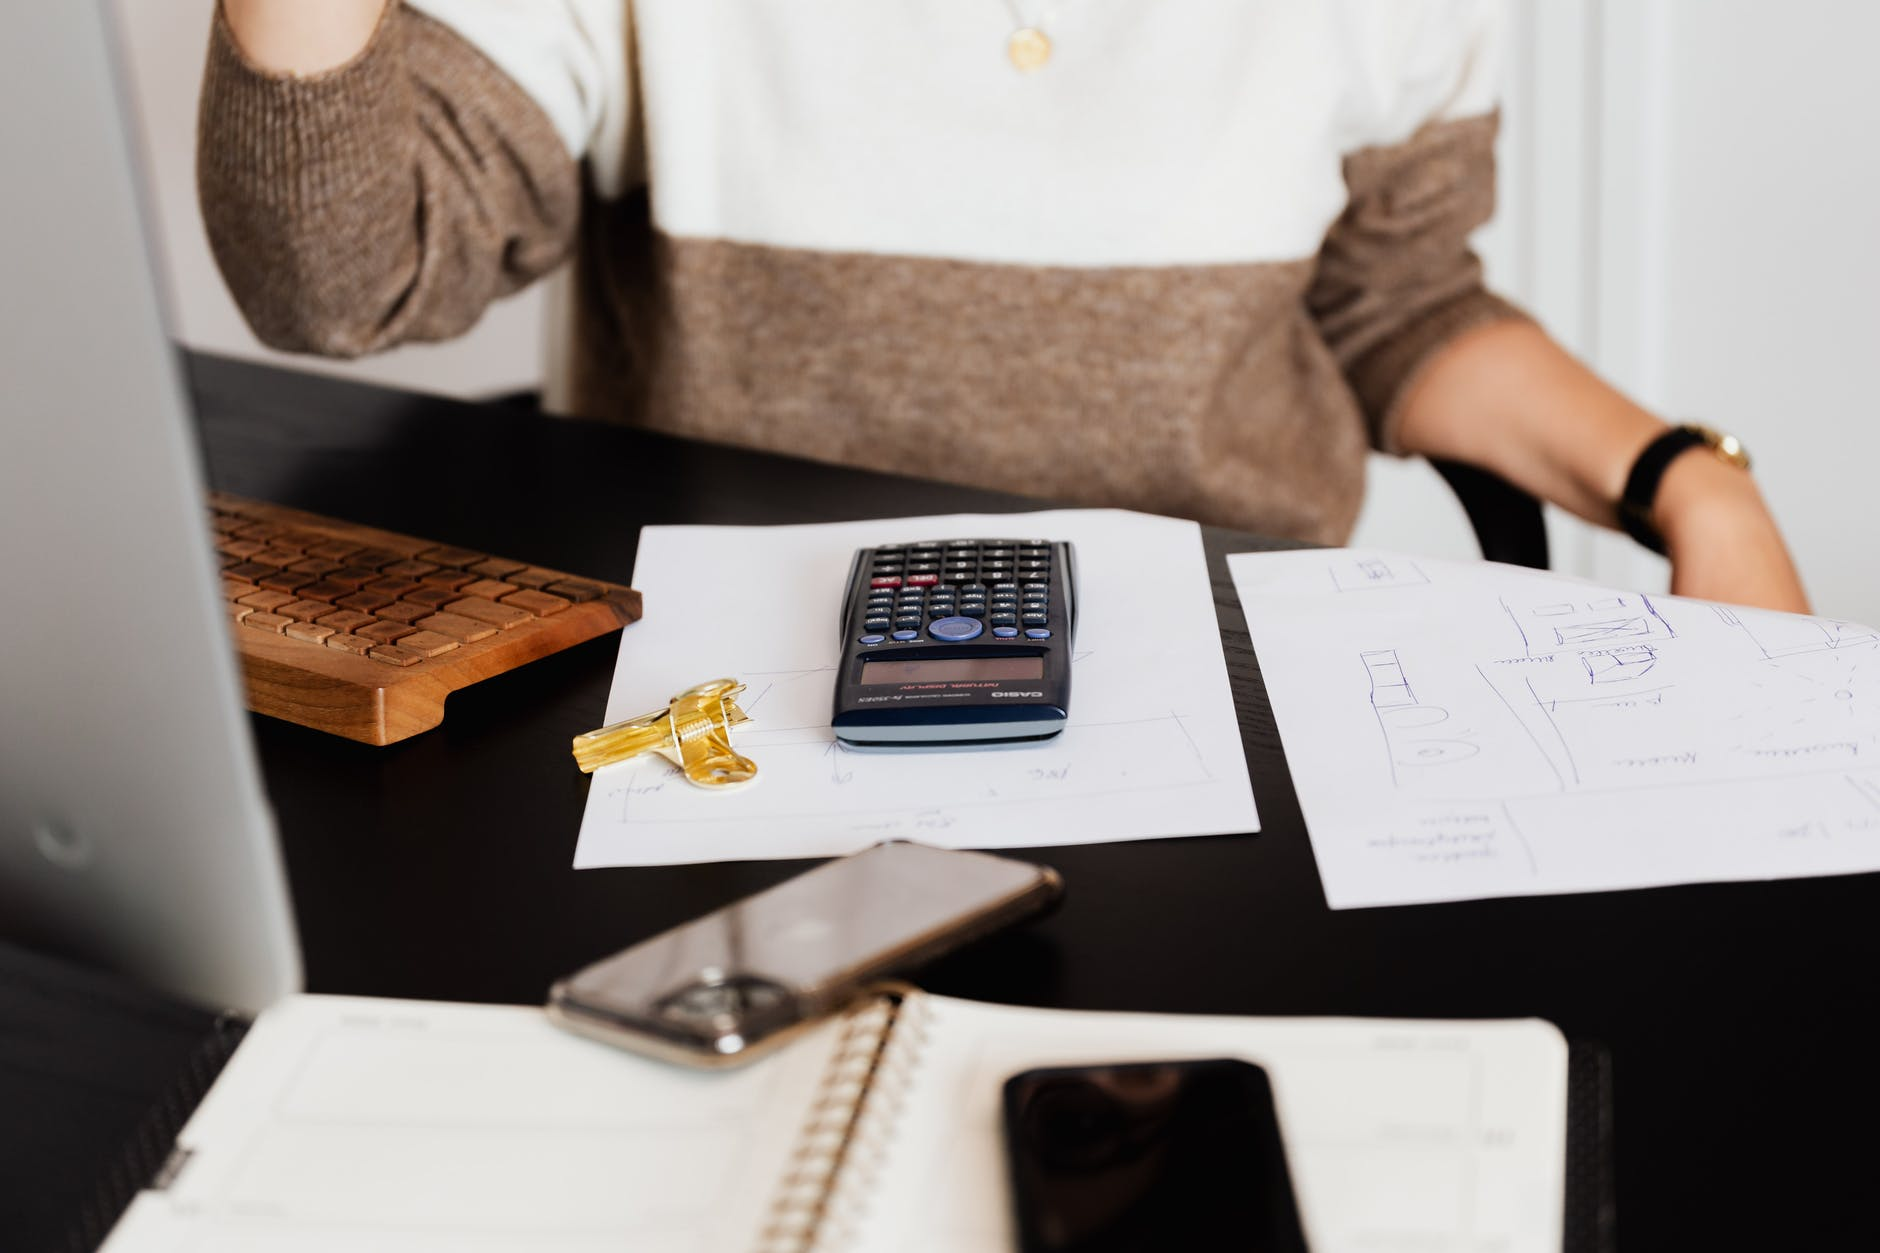 If you're overwhelmed by accounting, you can outsource it to specialists